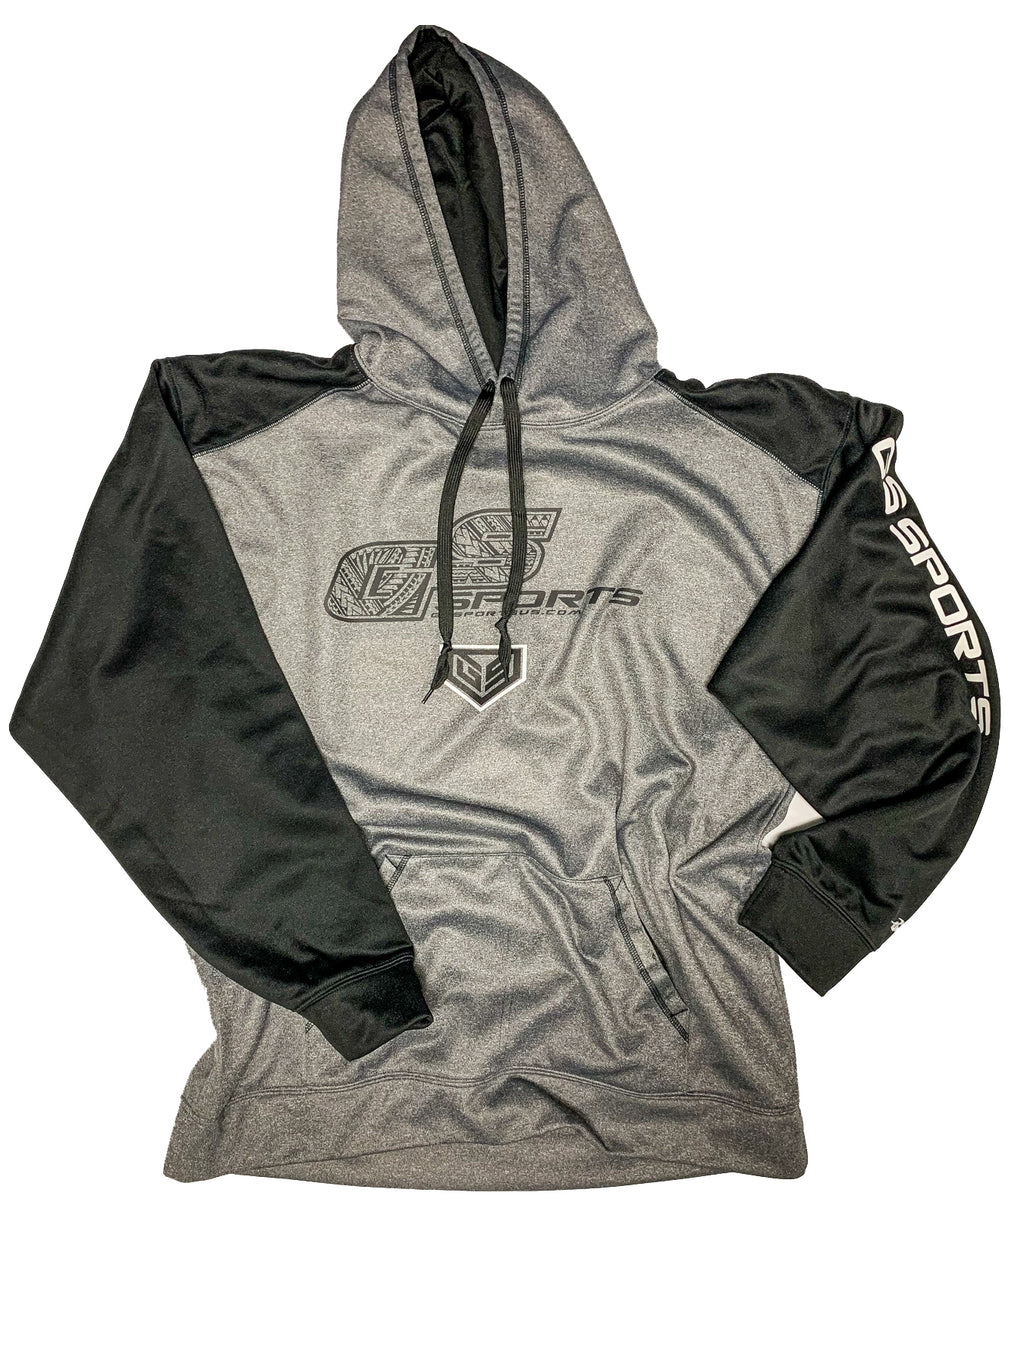 GS Sports OG Tribal Hoodie - Charcoal / Black